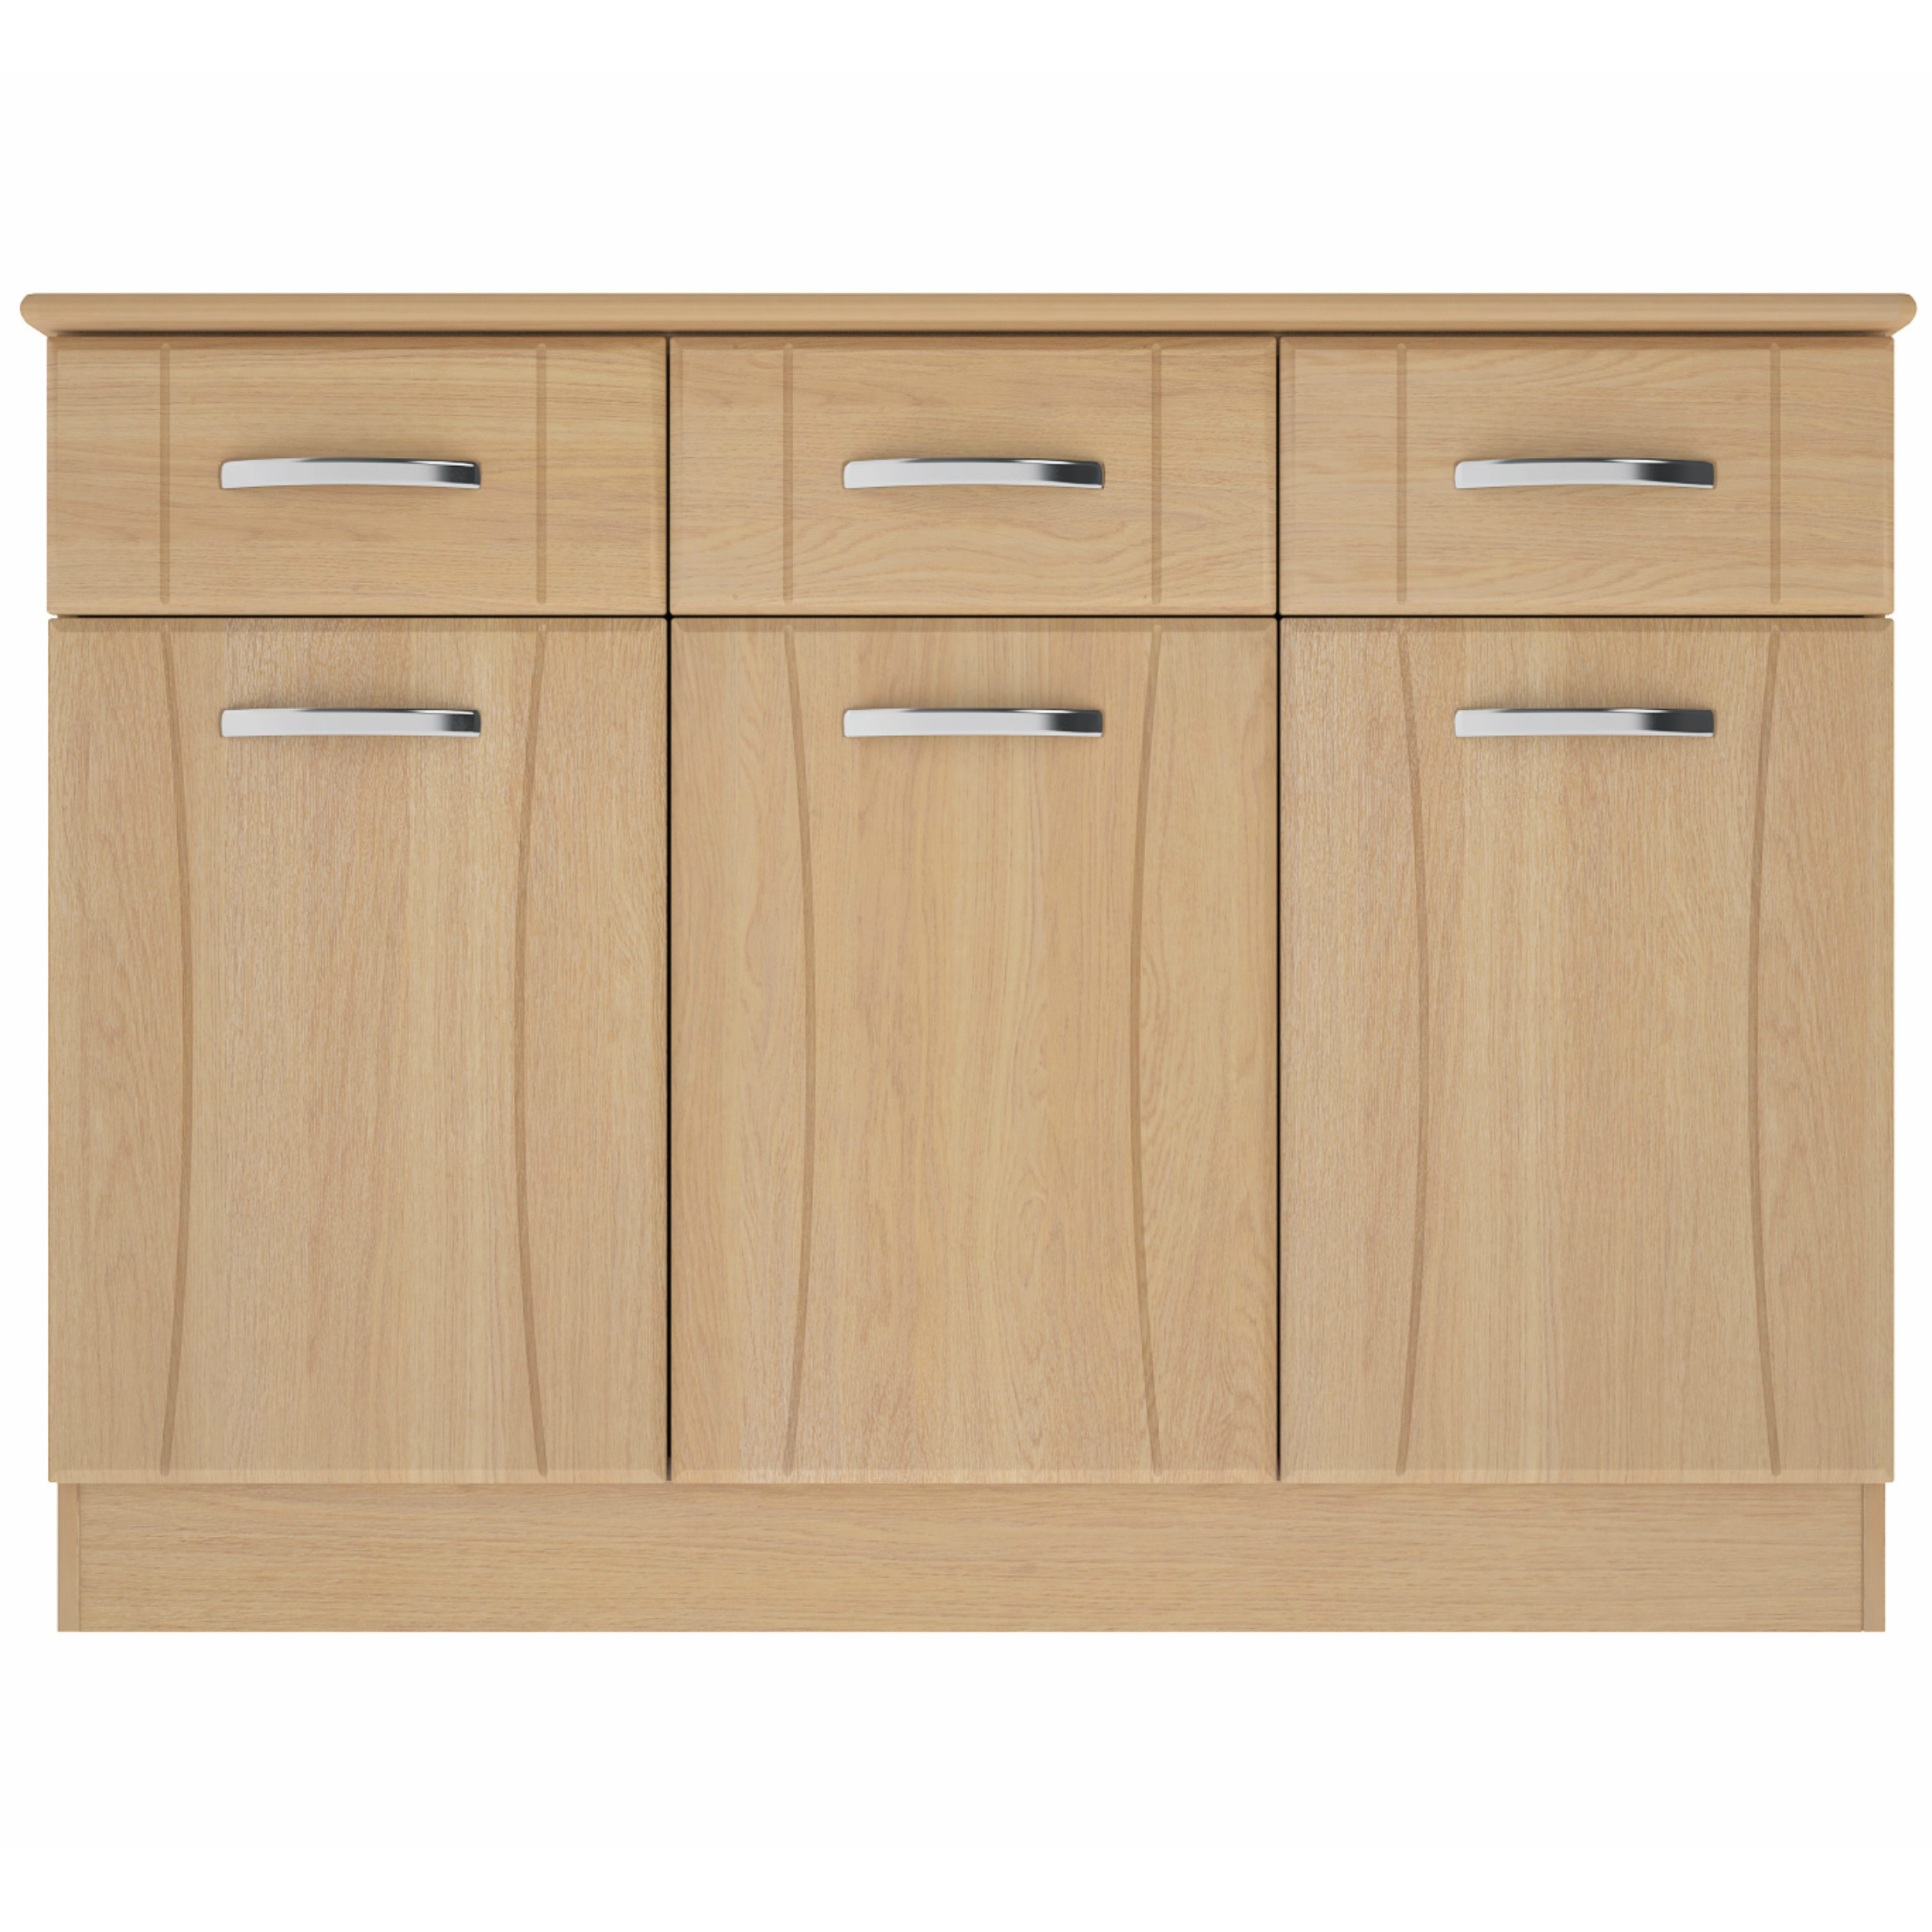 Sideboards – Furncare Inside Widely Used Walnut Finish 2 Door/3 Drawer Sideboards (View 12 of 20)